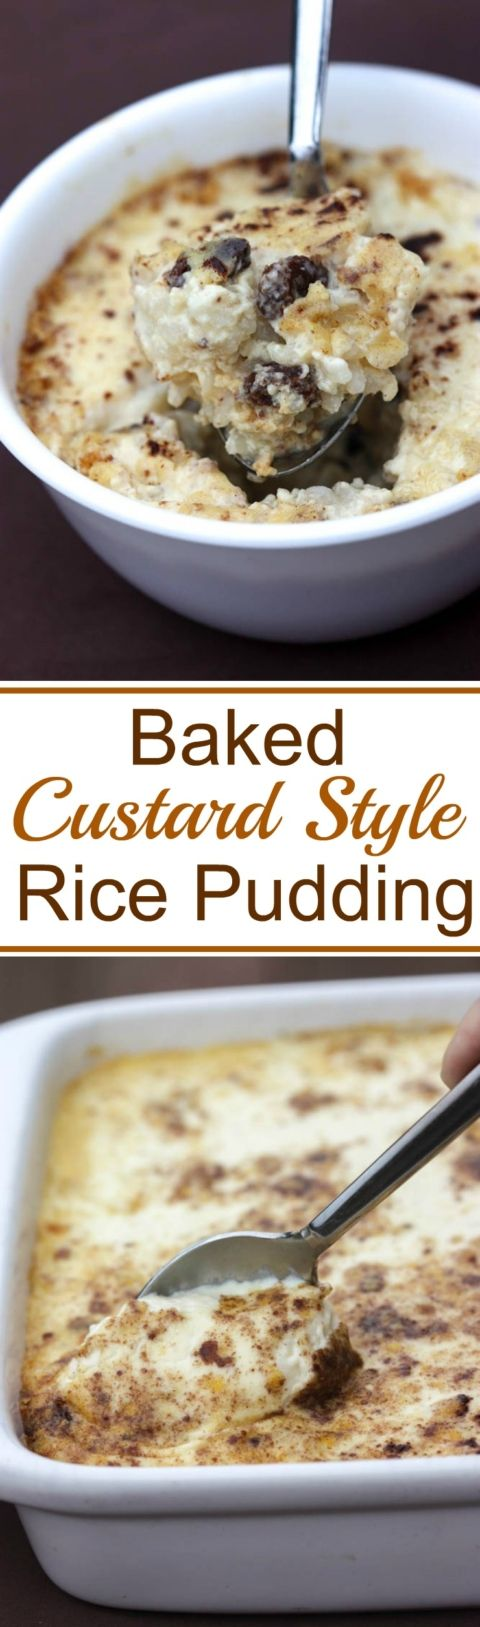 Baked Custard Style Rice Pudding recipe. A delicious Old Fashioned recipe from my Grandma| Tastes Better From Scratch